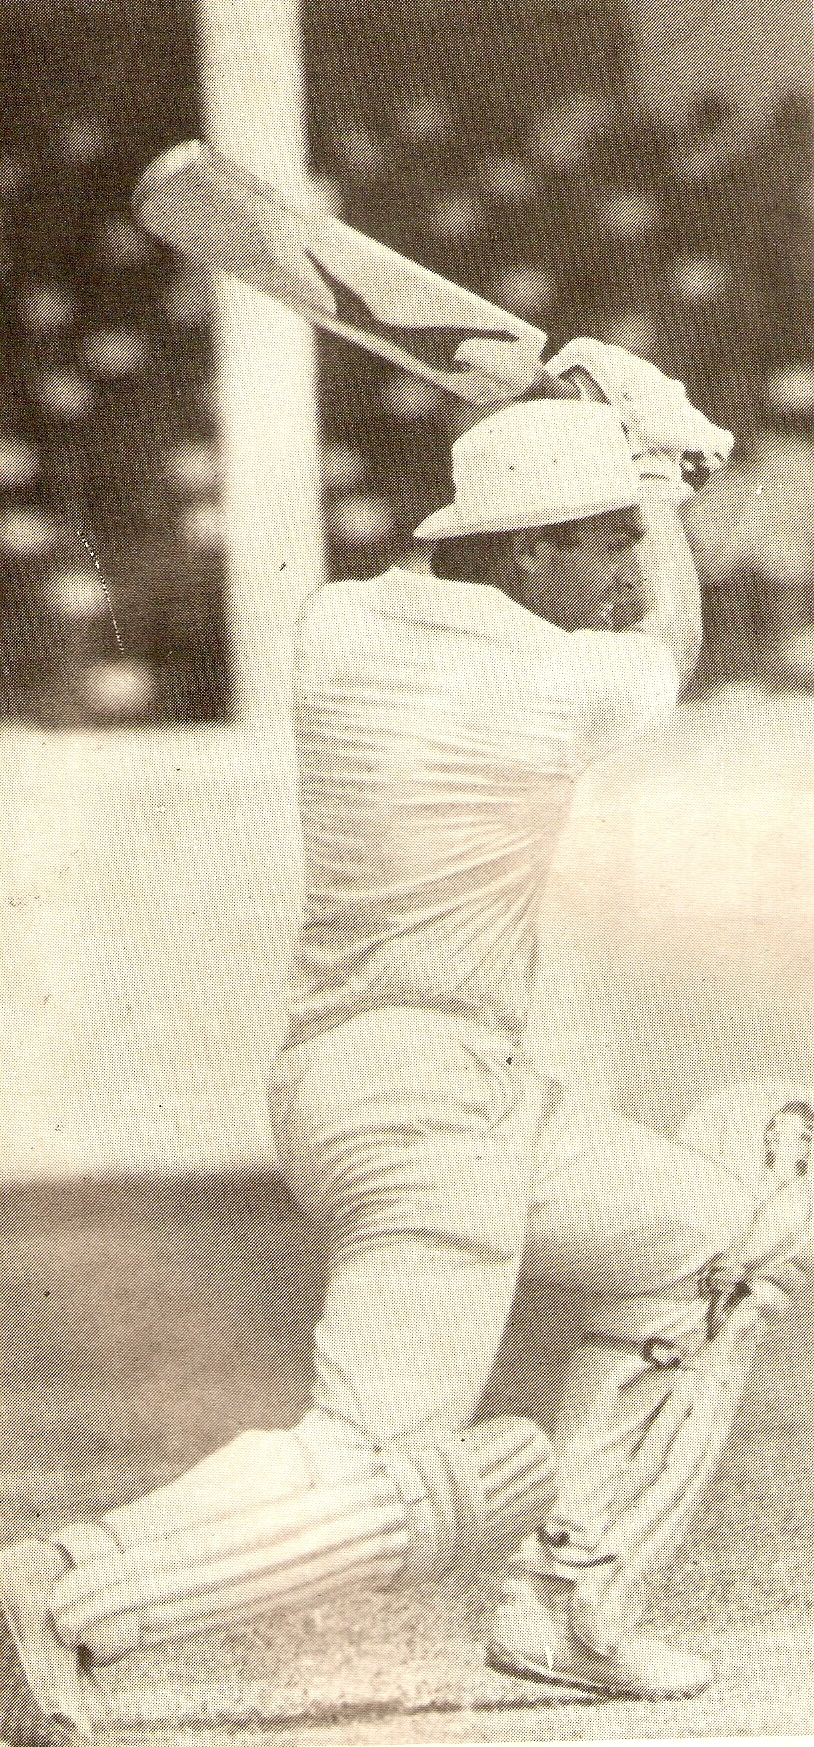 Ranjan on his way to his first hundred, 1985